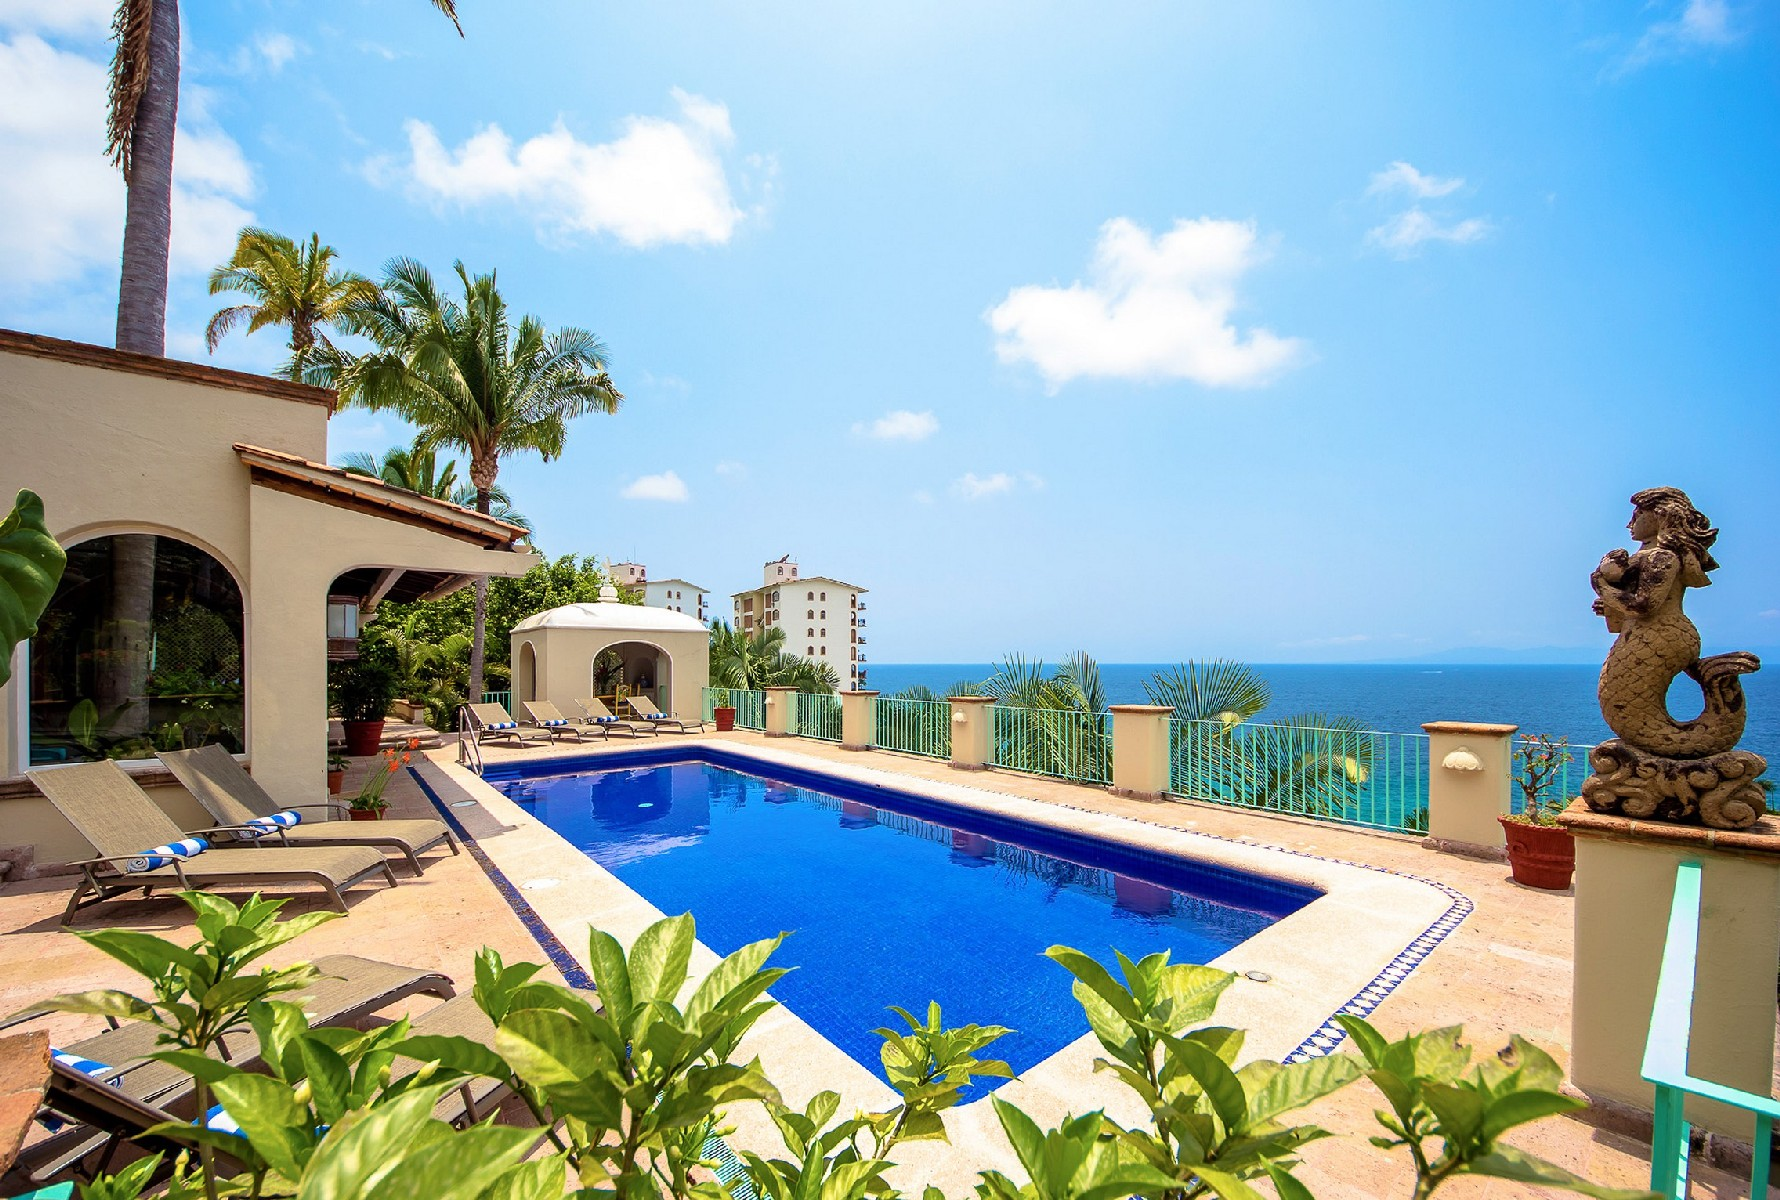 Additional photo for property listing at Casa Peregrina, Puerto Vallarta Paseo Sierra del Mar Puerto Vallarta, Jalisco 48294 Mexico